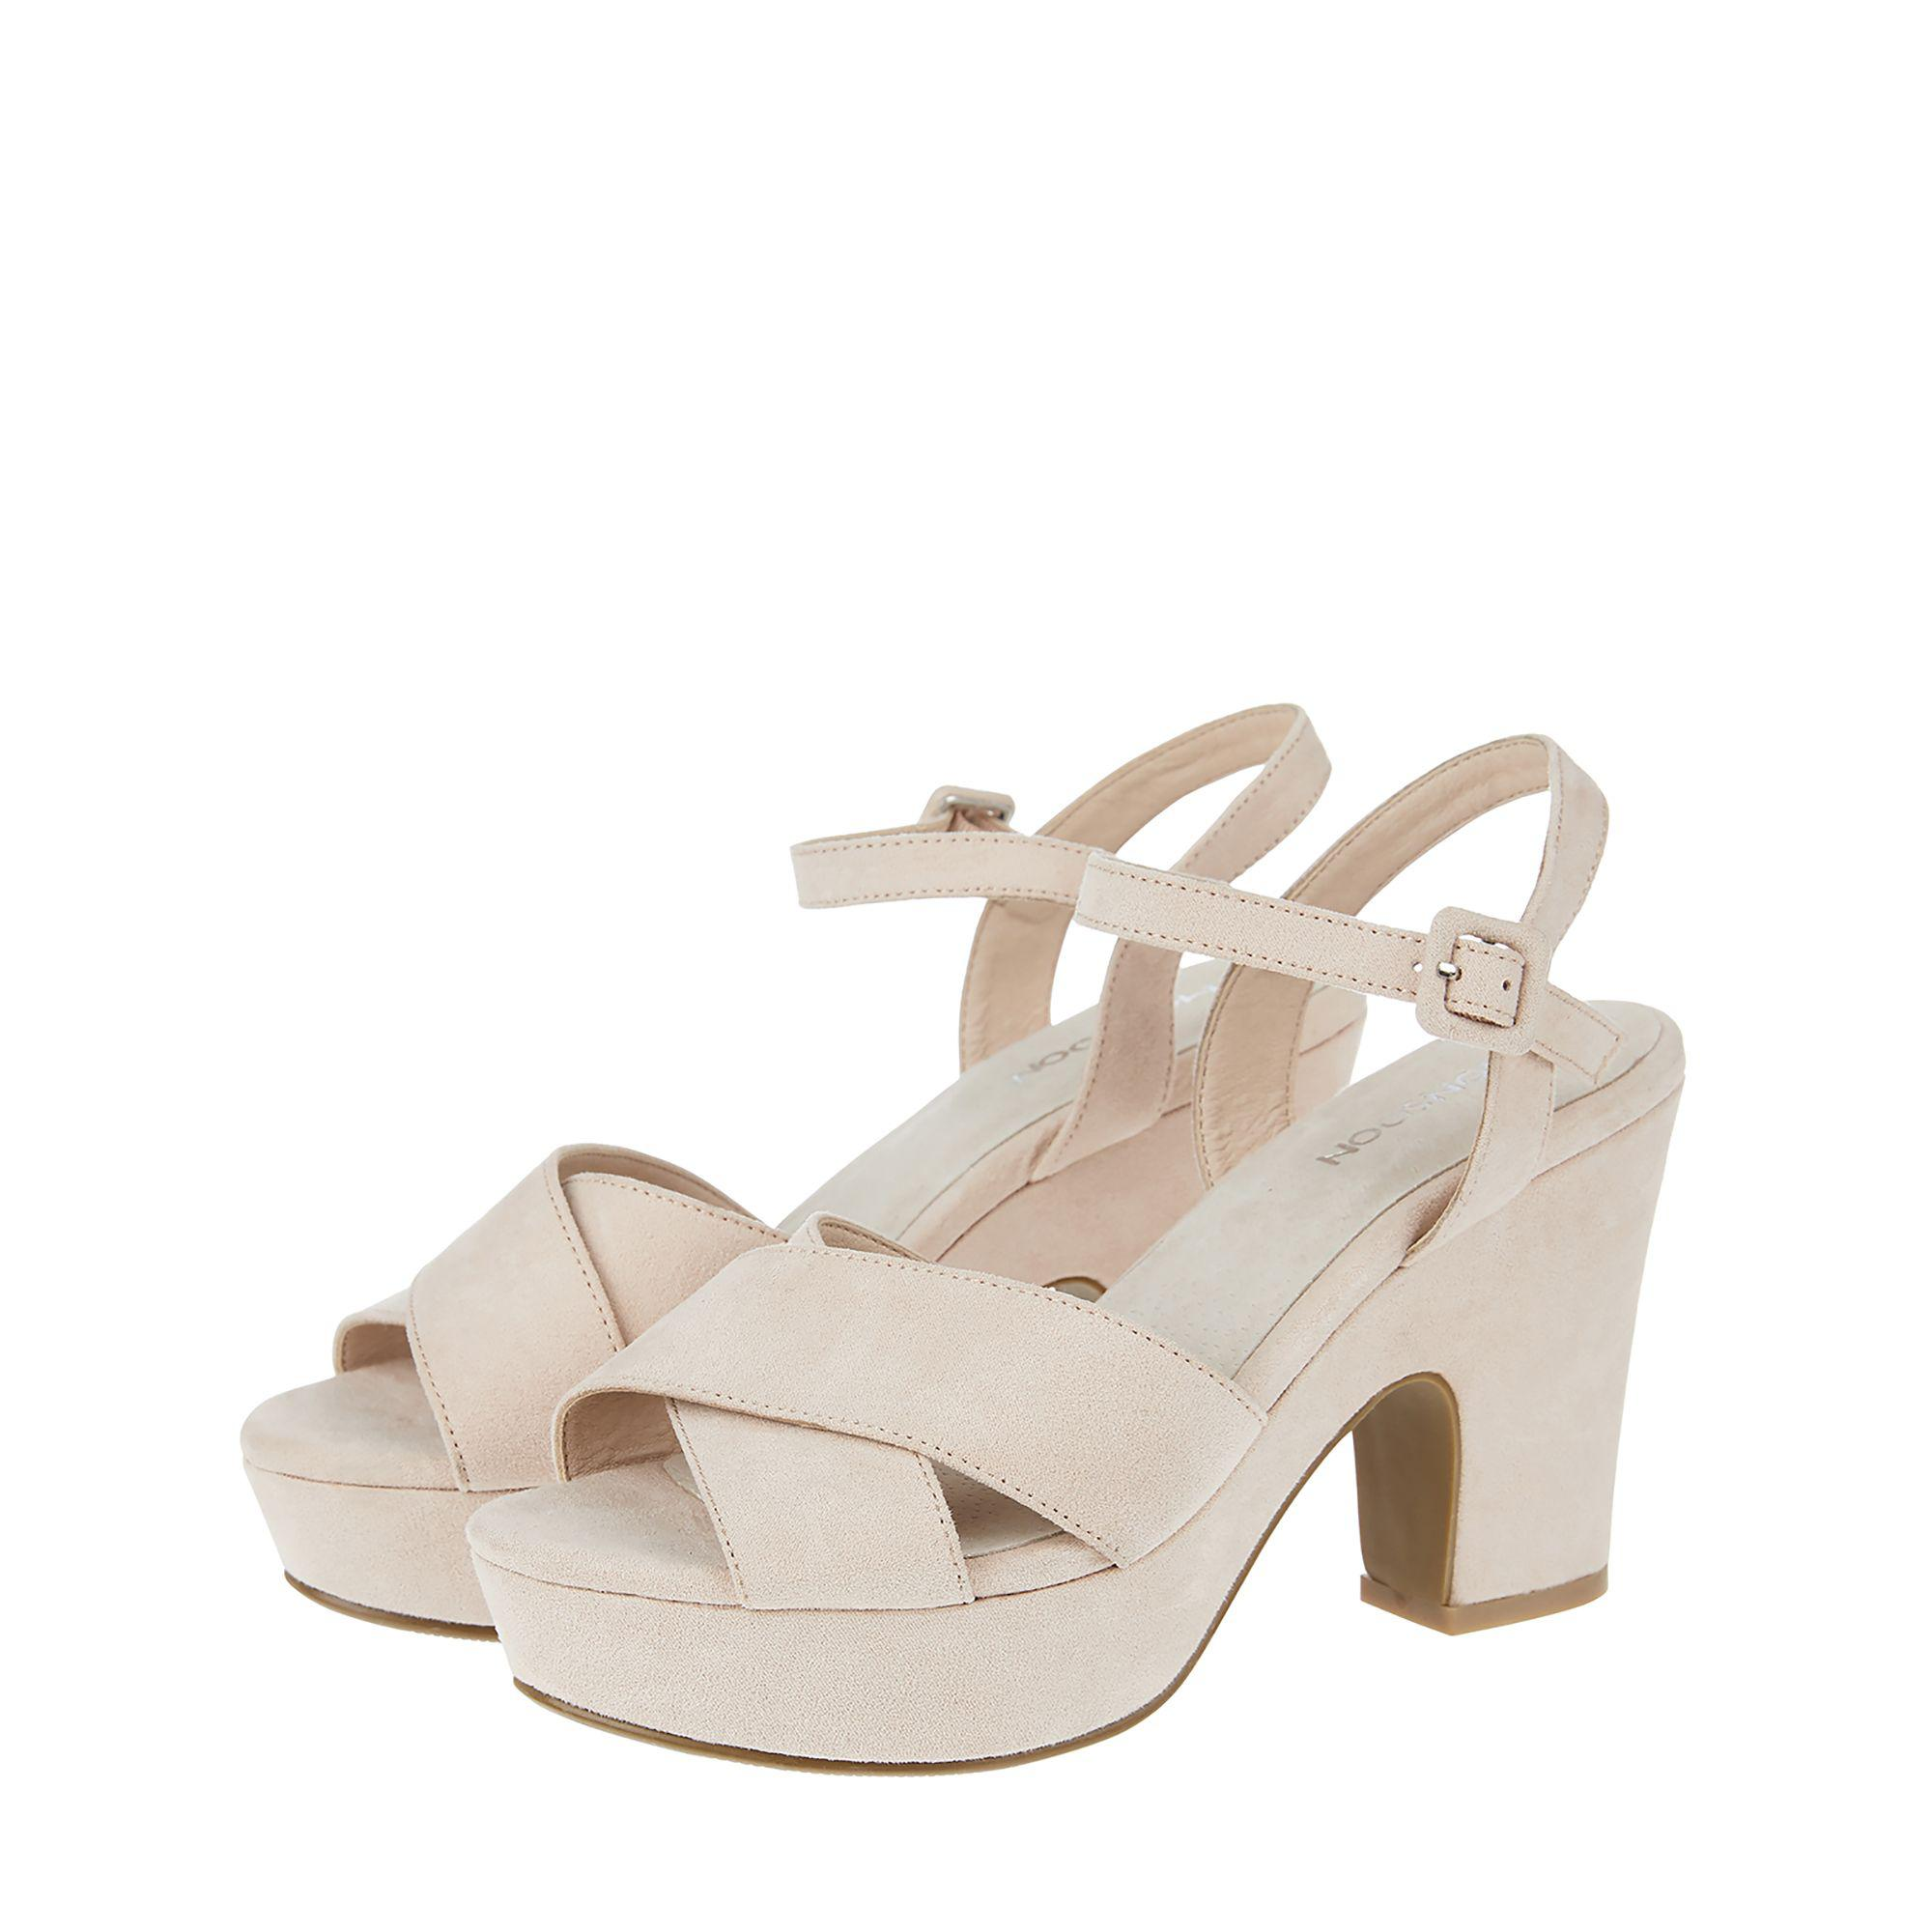 Pink 'Carrie' crossover platform sandals clearance exclusive great deals cheap online outlet Cheapest reliable sale online wMTLIuiTd8